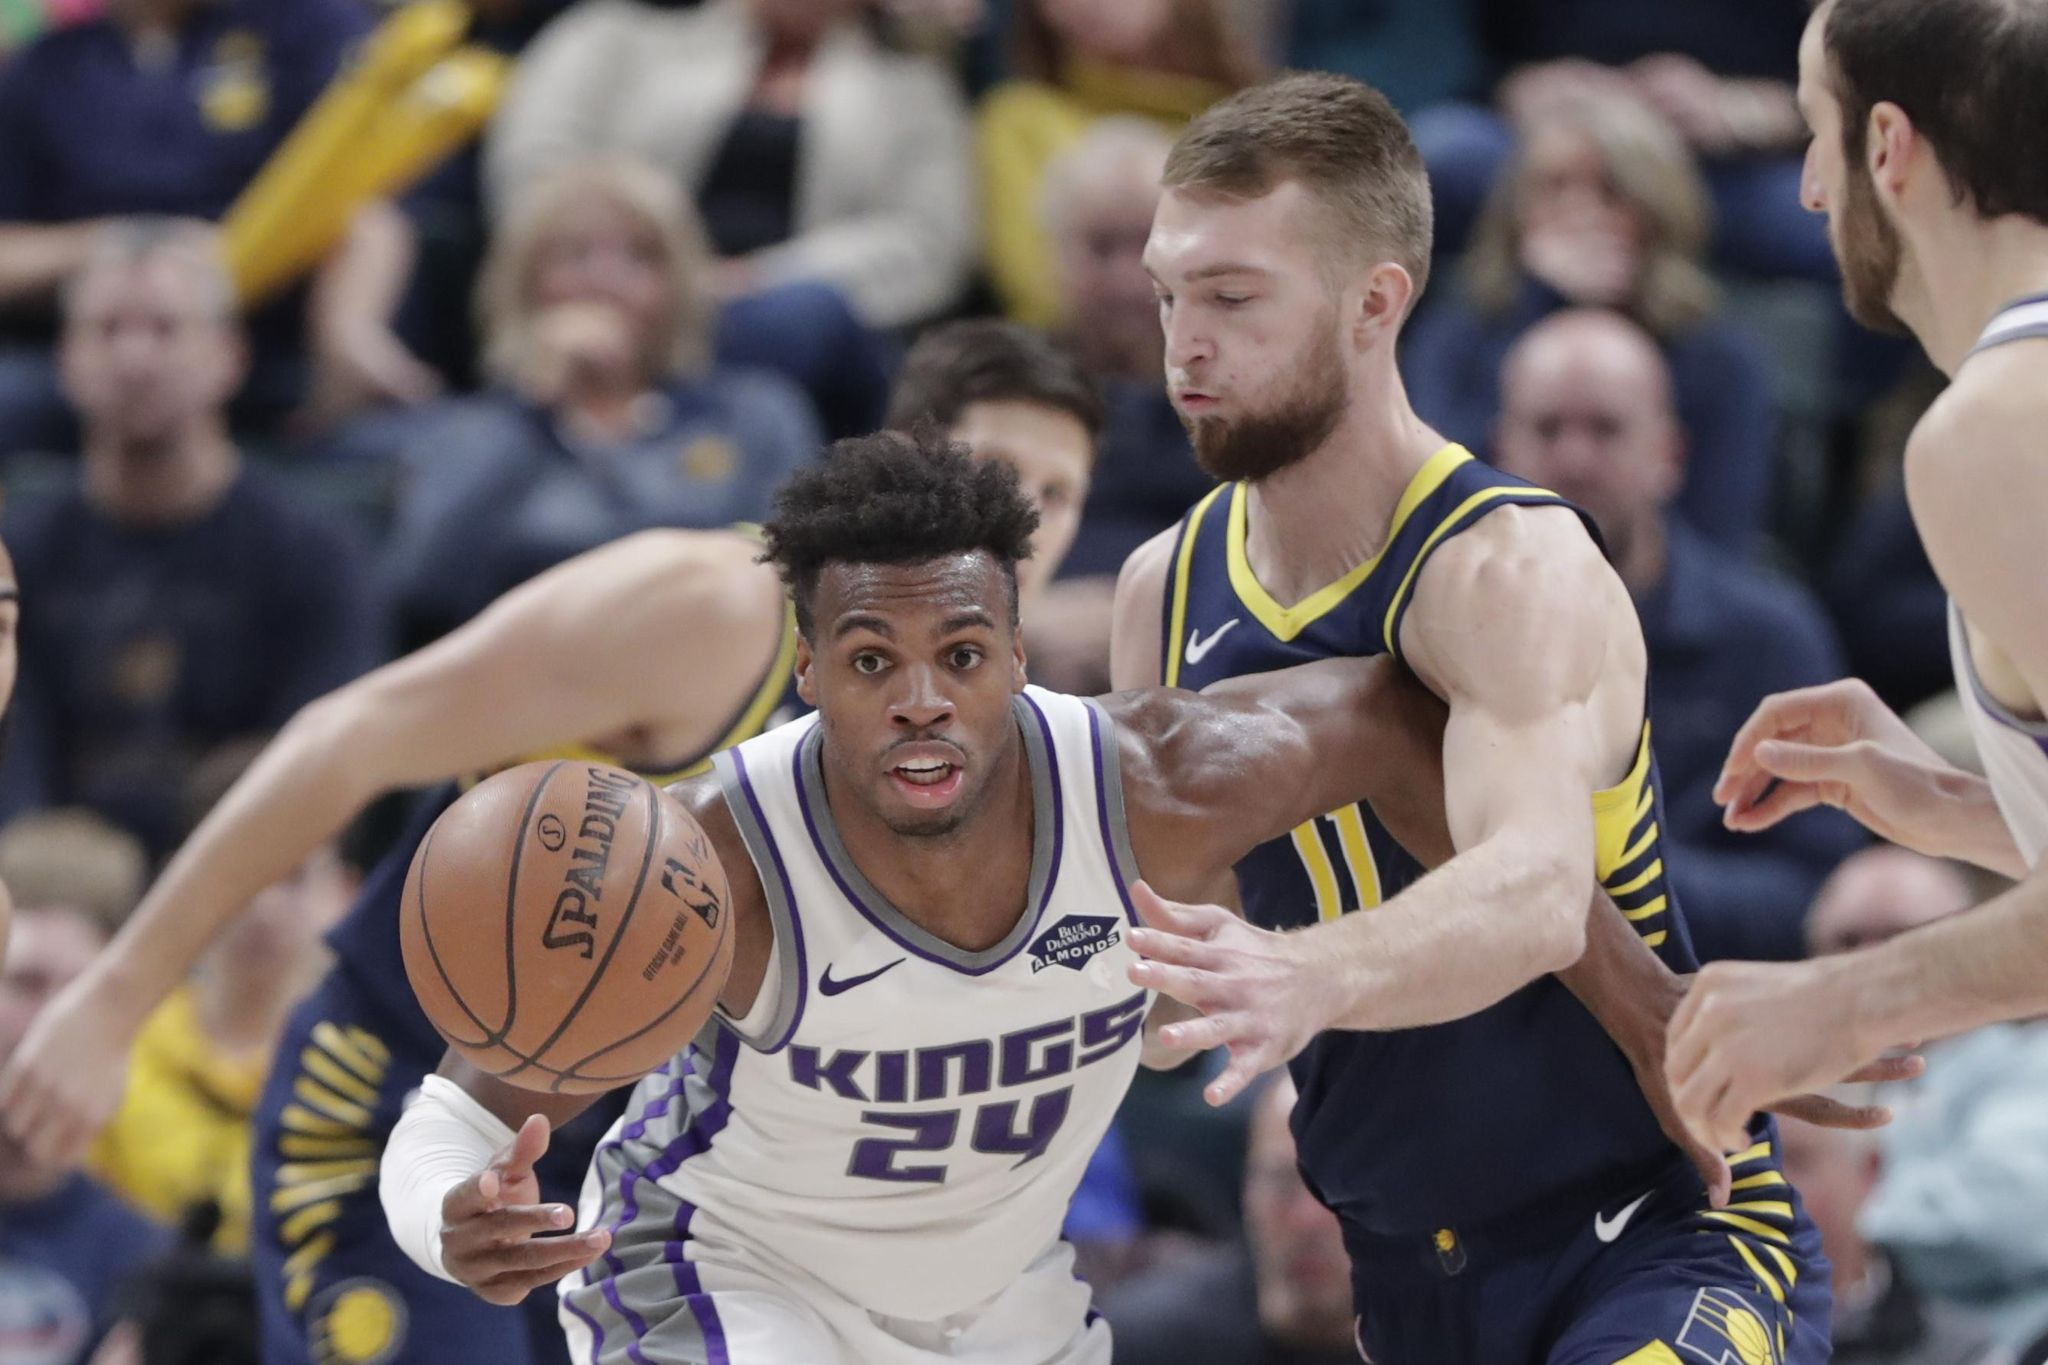 Kings_pacers_basketball_96543_s2048x1365